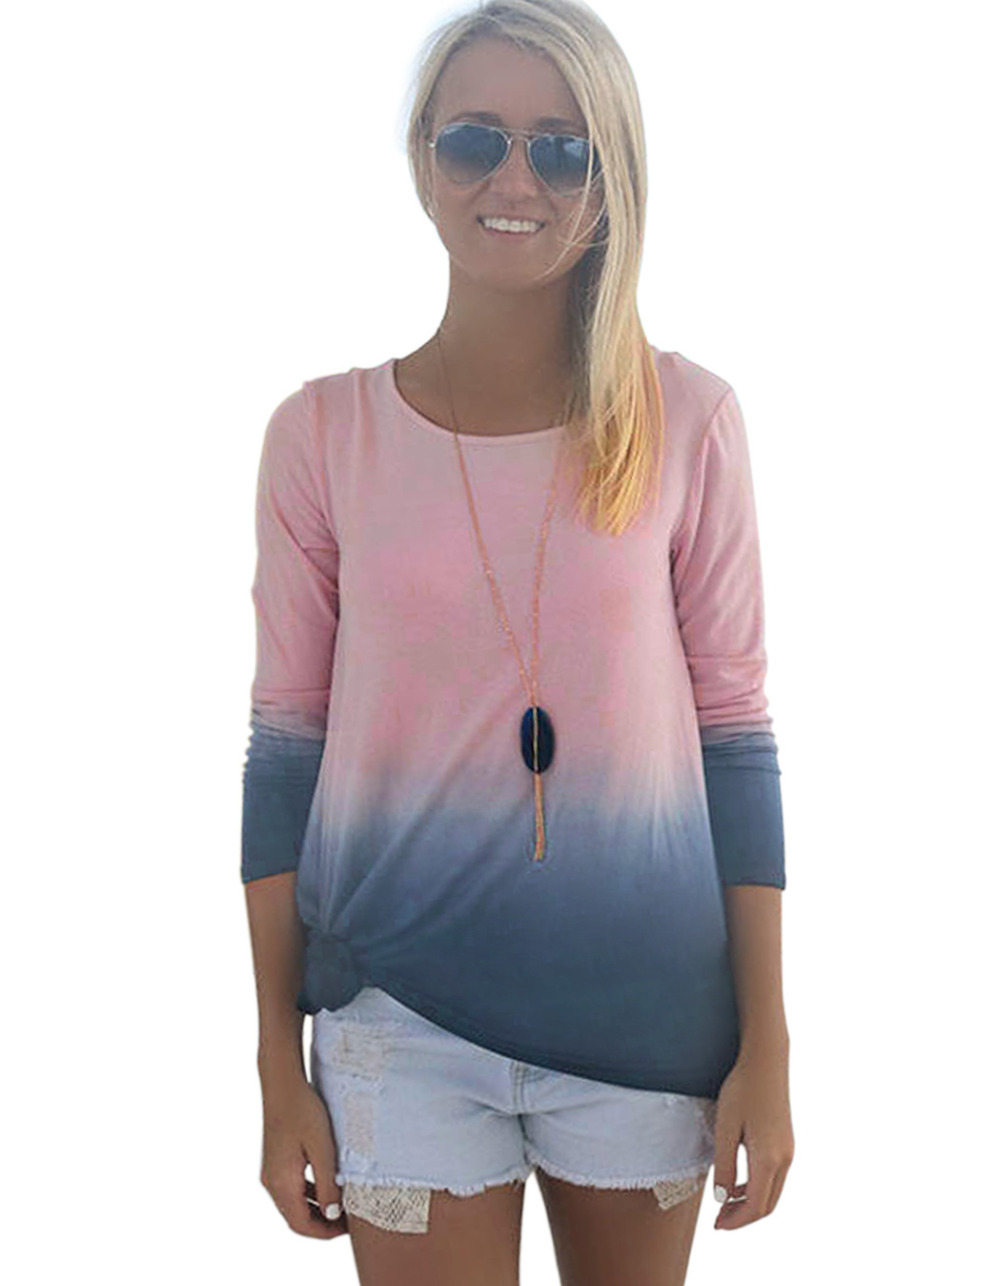 da6bd2b91f1b4 Get Quotations · Contrast color women T-shirt pink tops casual ladies long  sleeve loose tees tops plus